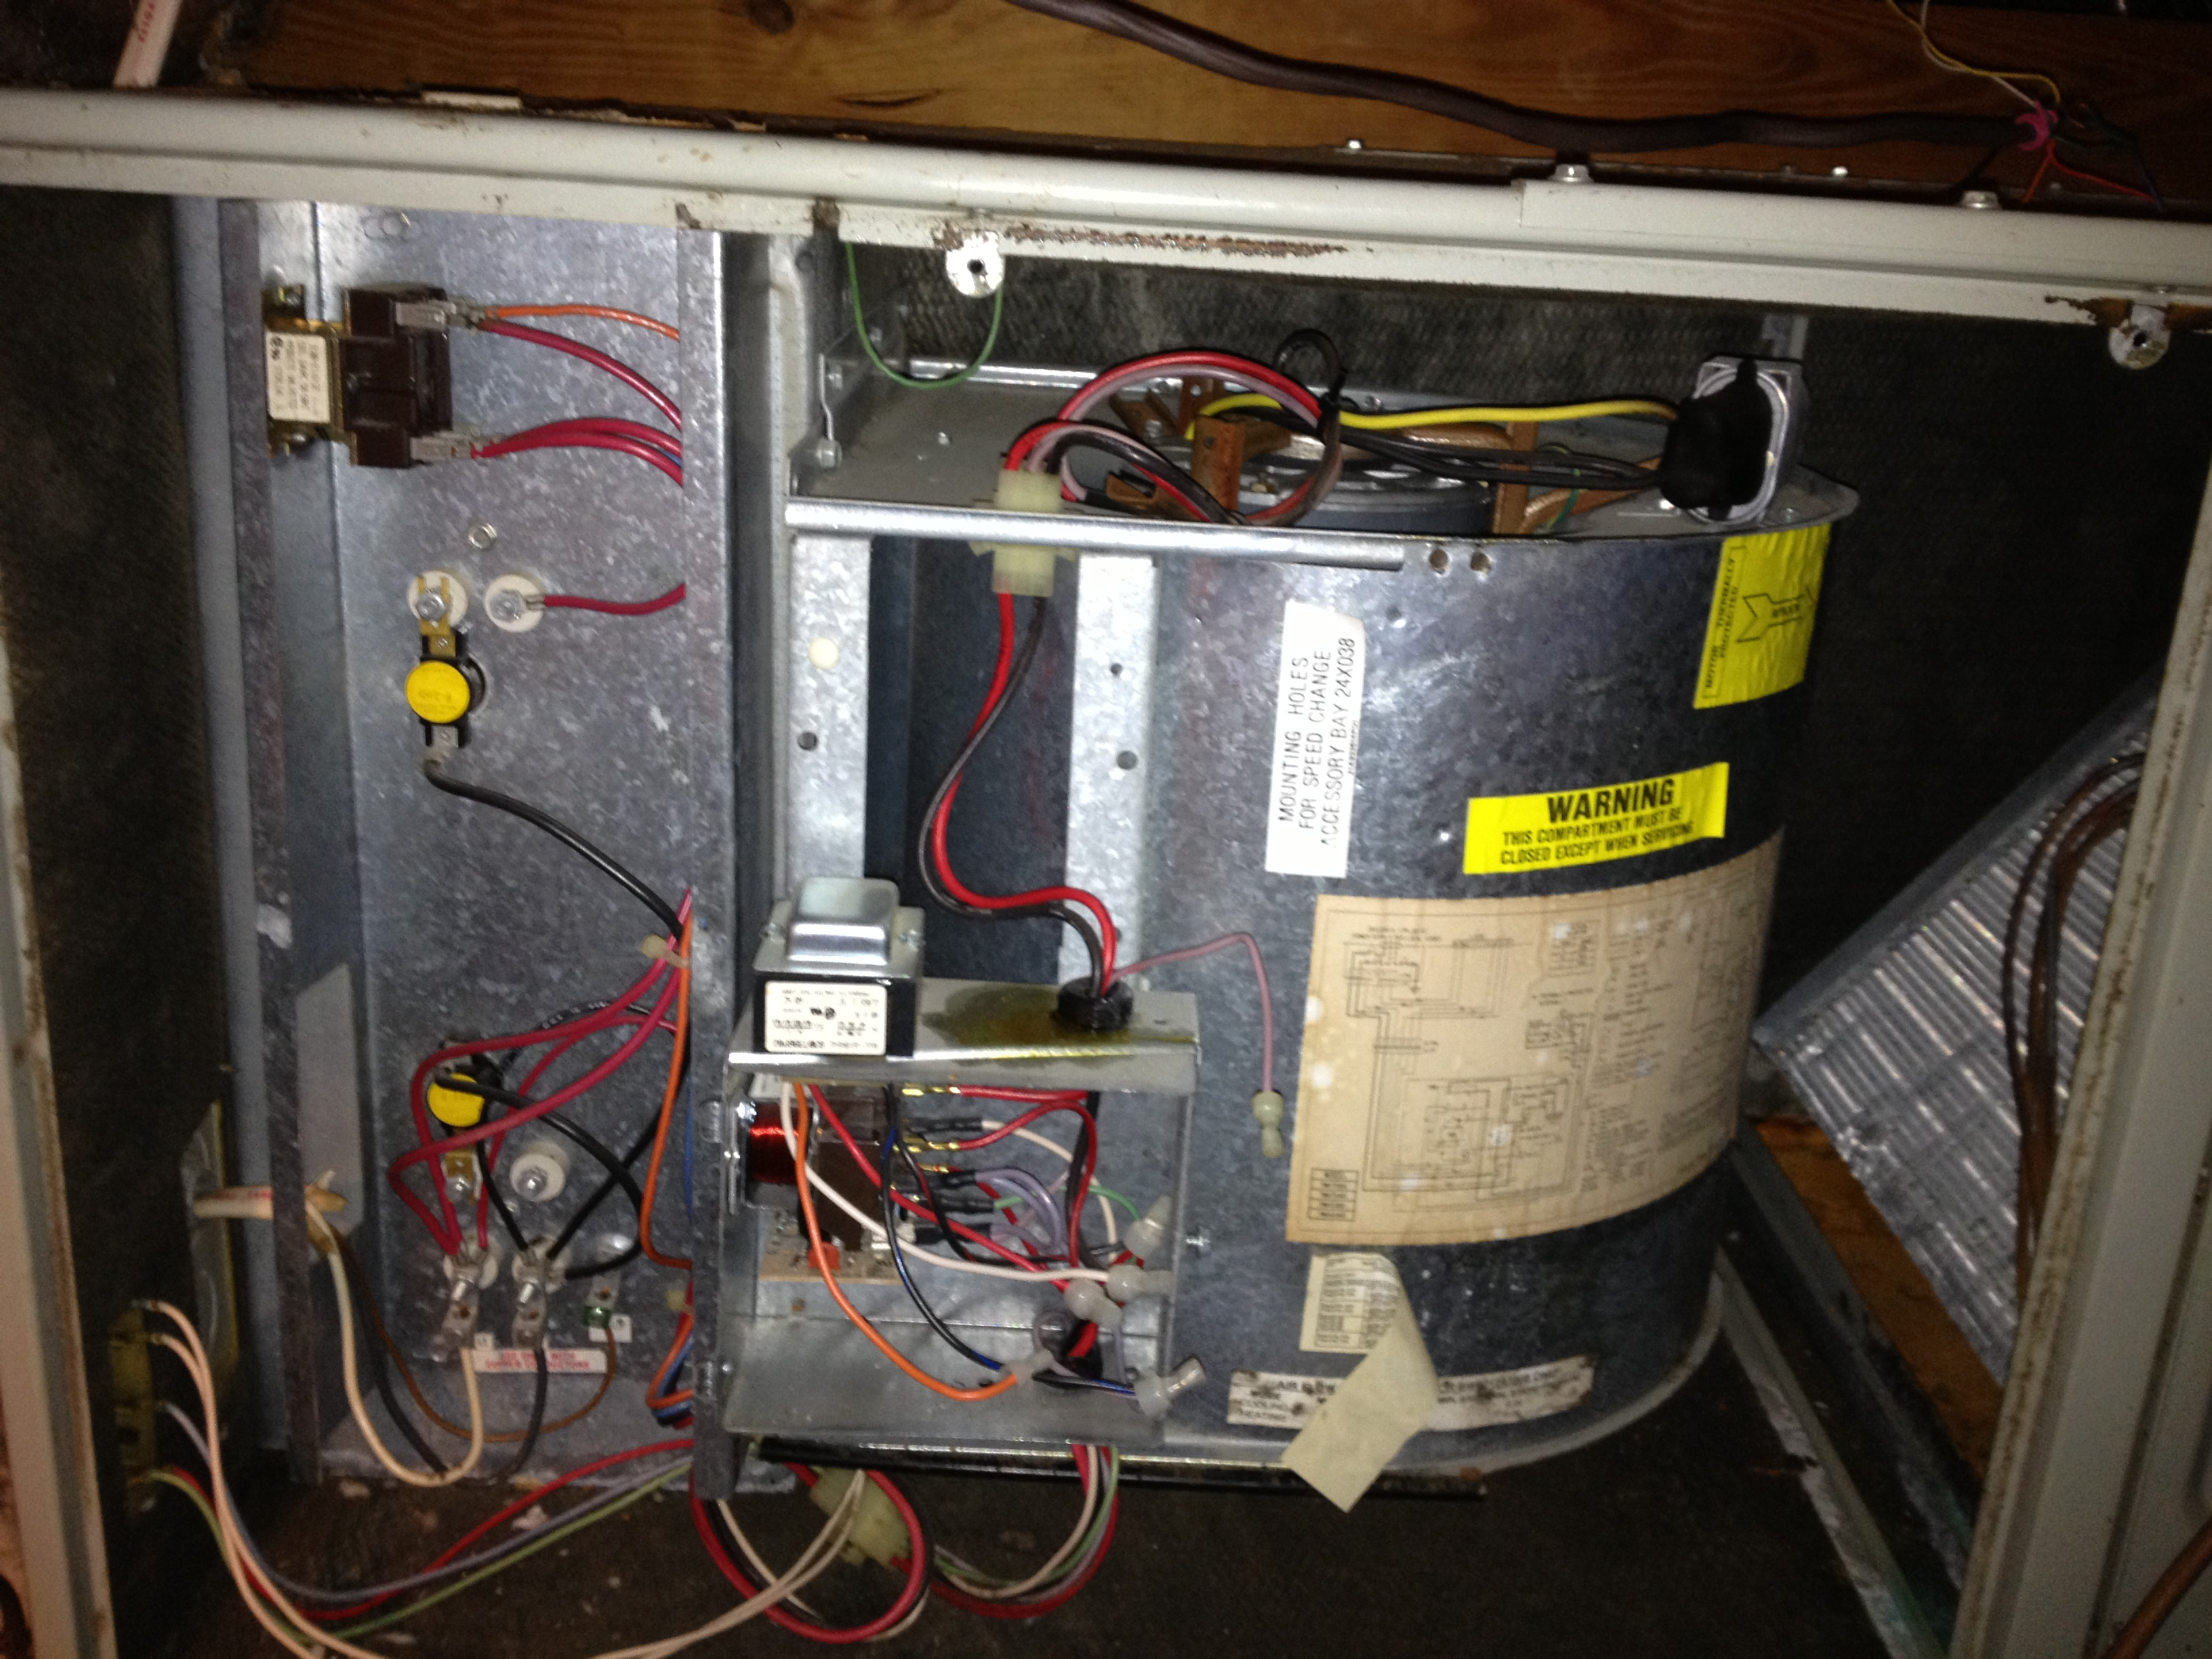 Thermostat Wiring Diagram Wires On Electric Baseboard Heat Thermostat